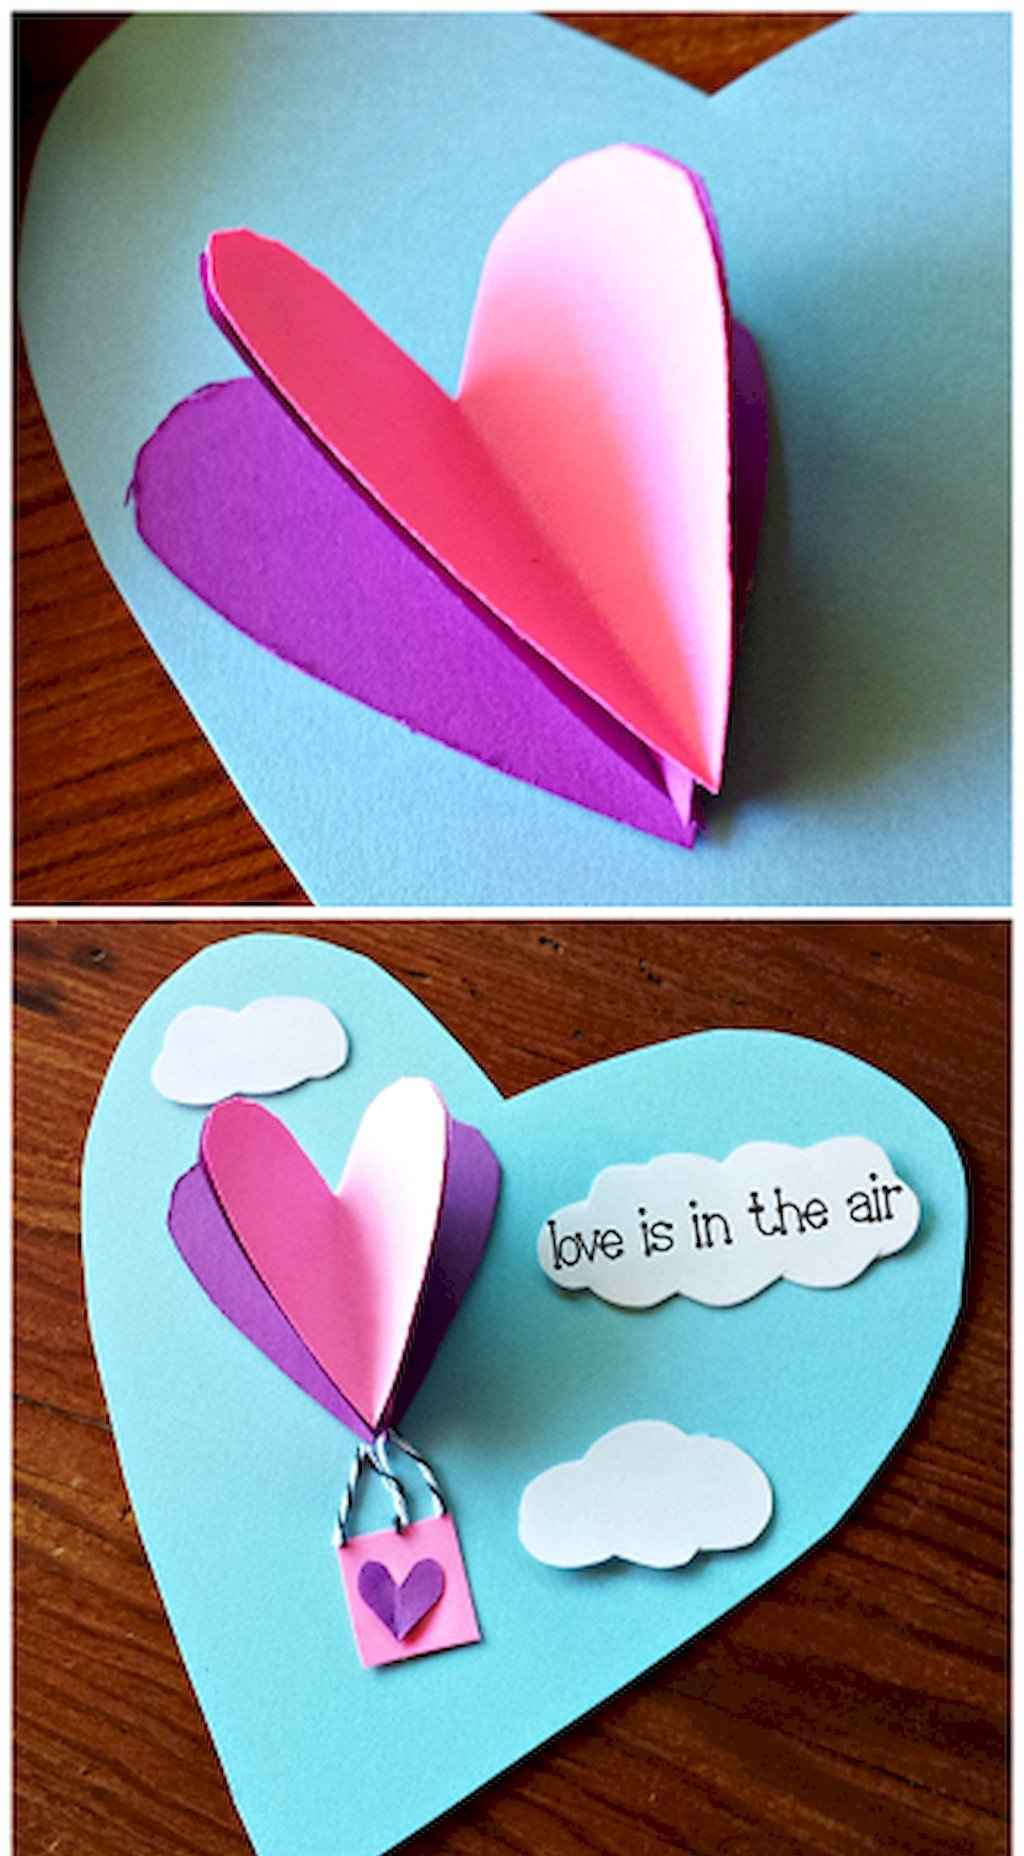 60 Romantic Valentines Crafts Ideas On A Budget (53)